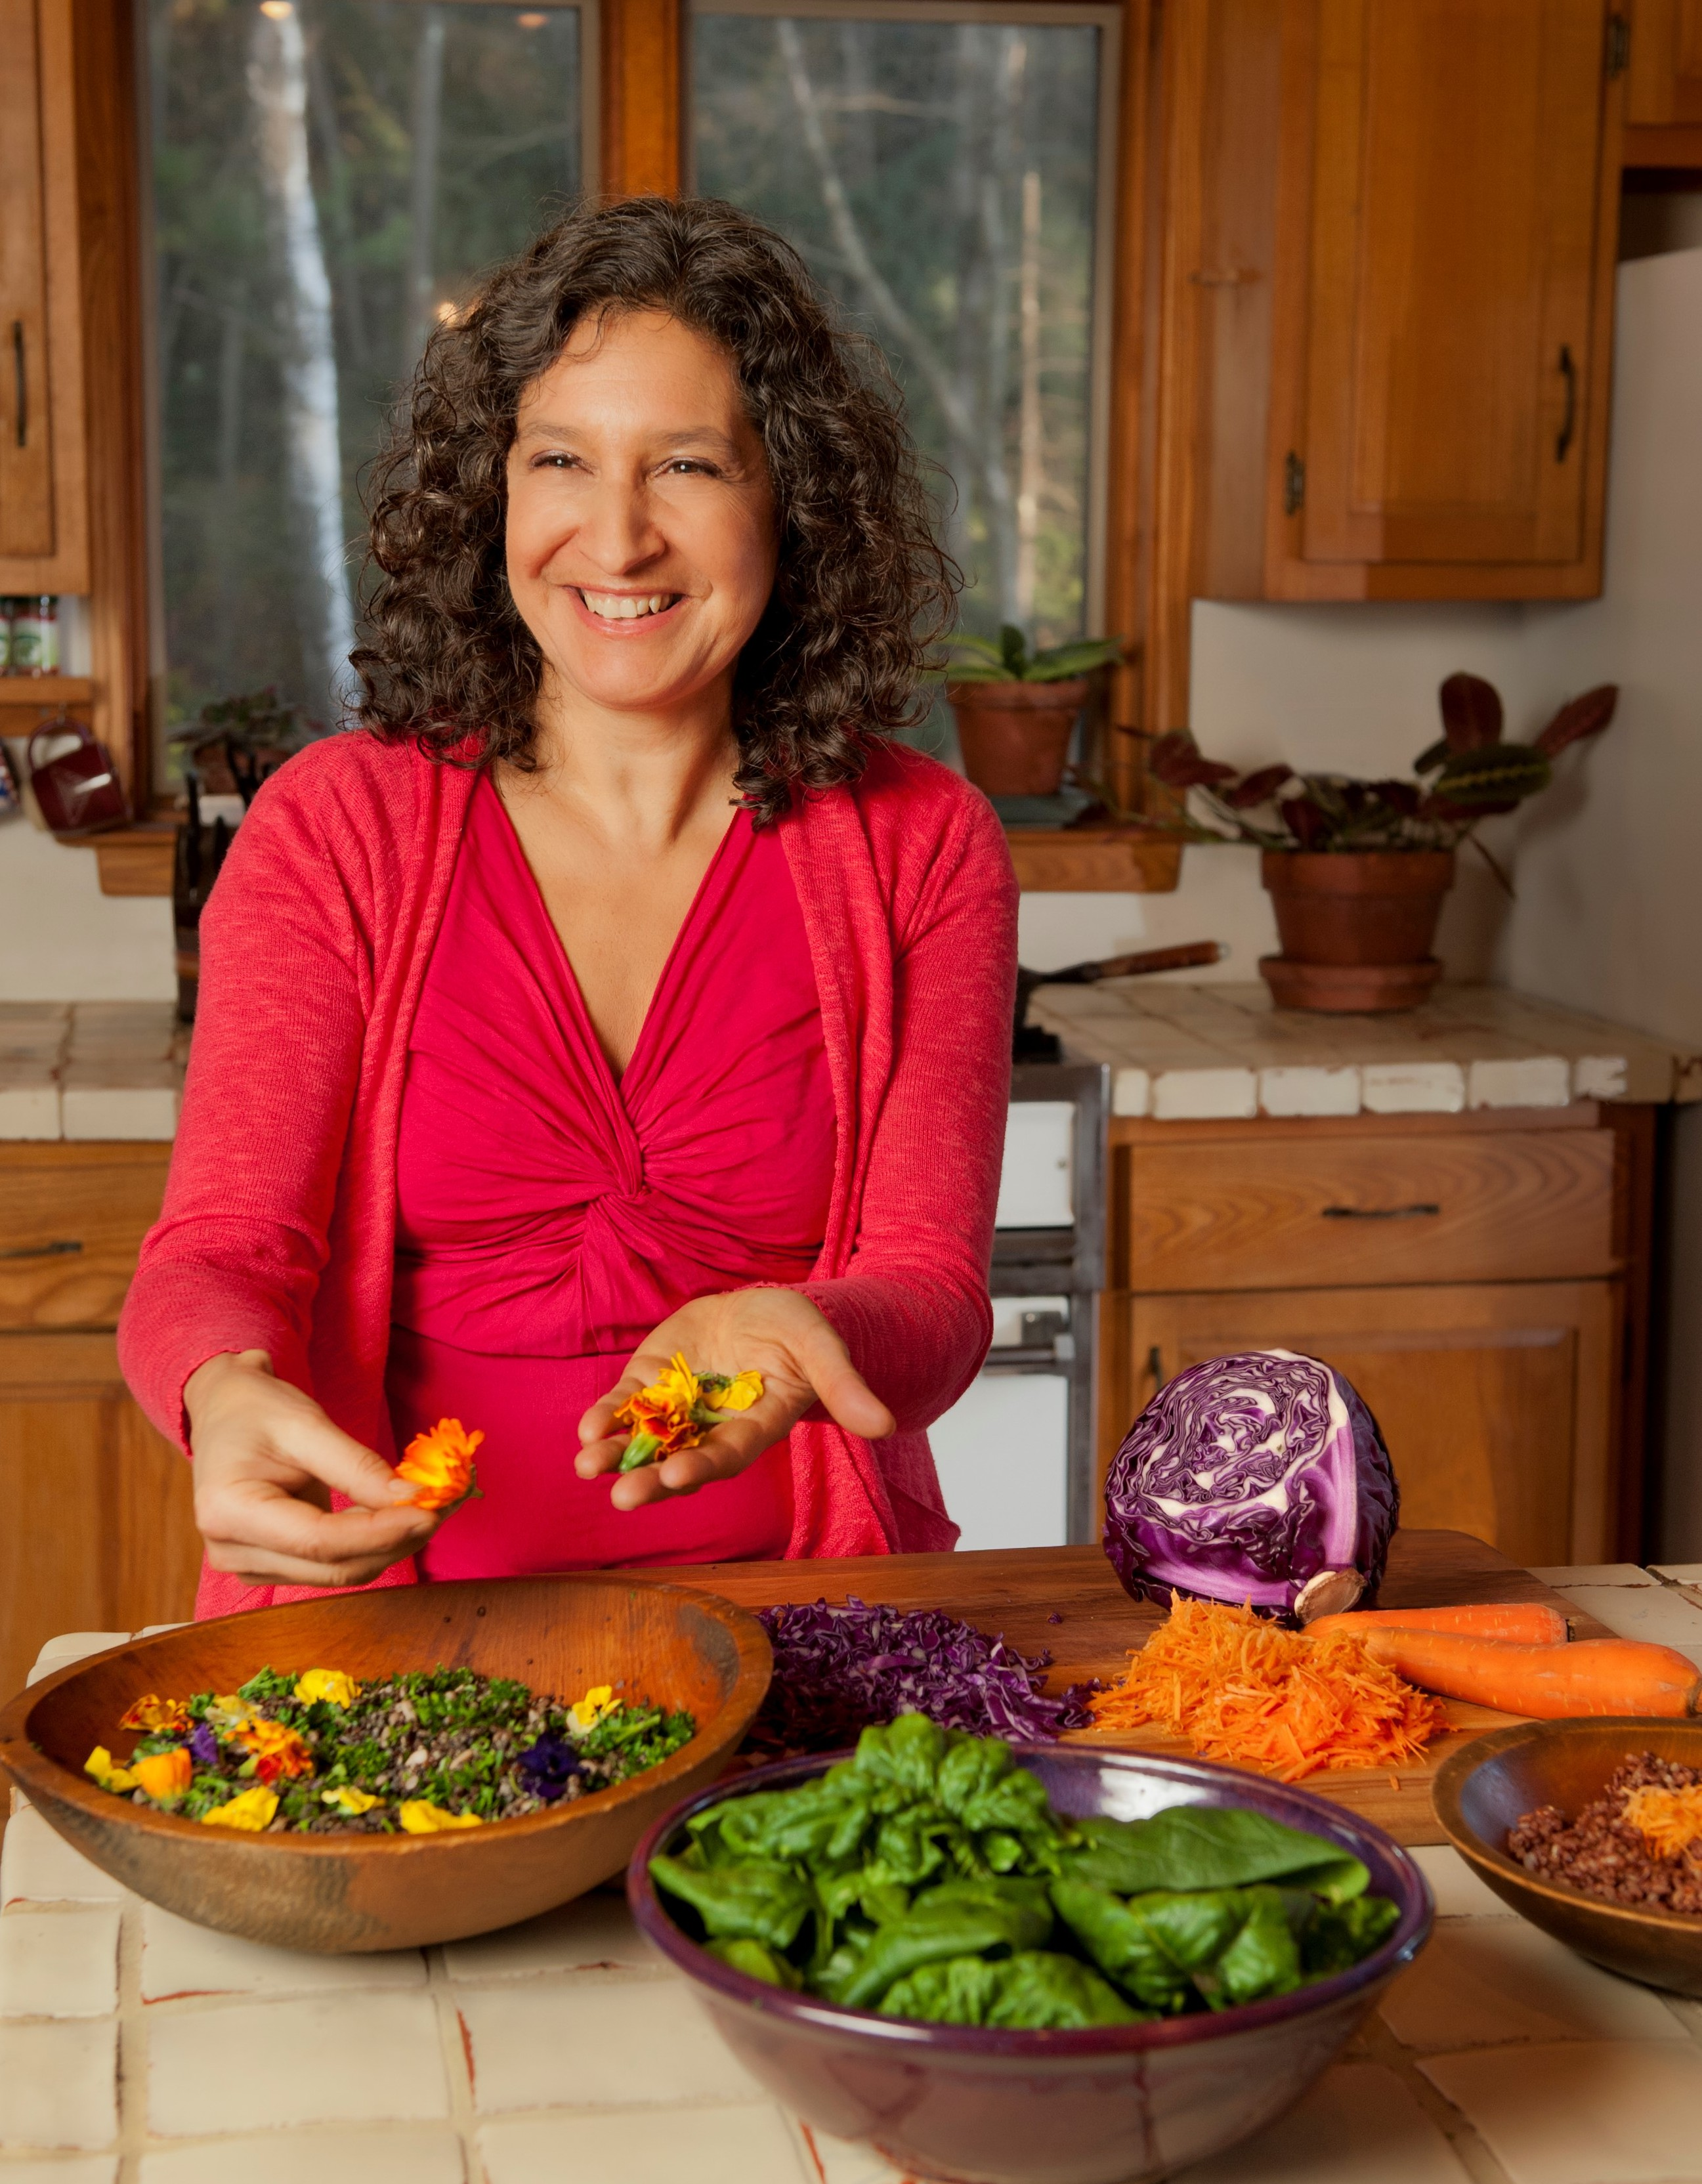 Leslie Cerier, the Organic Gourmet Chef